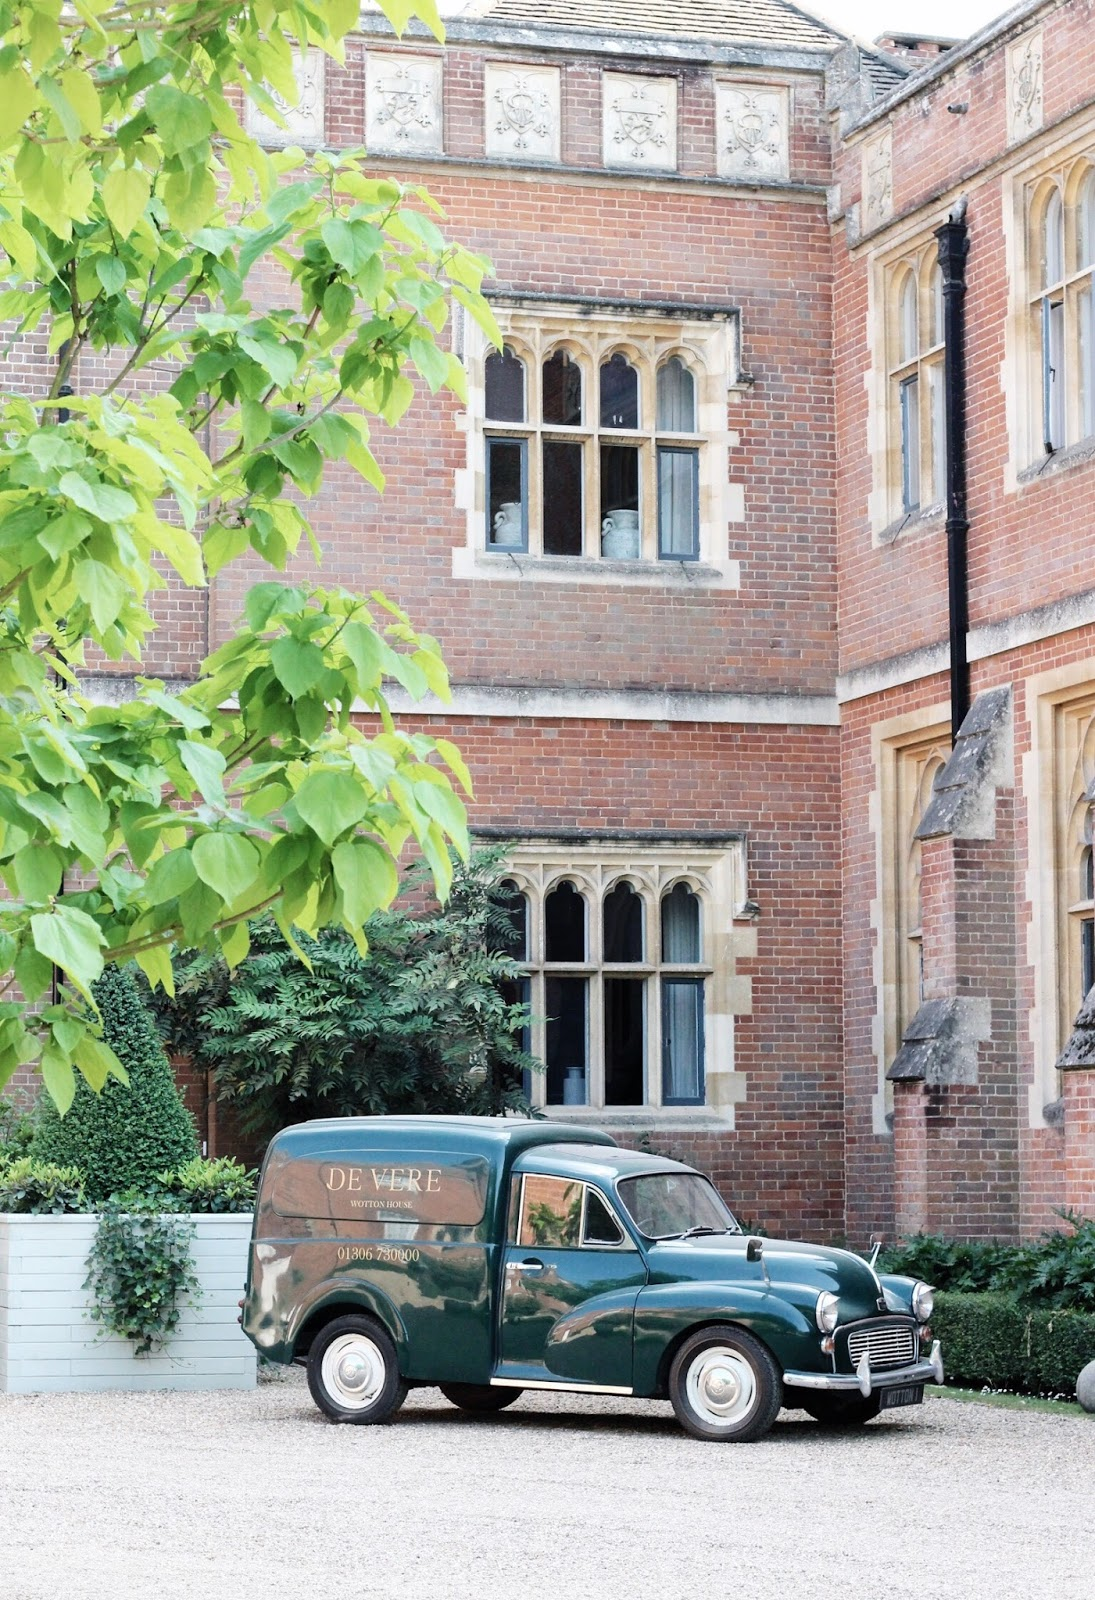 De Vere Wotton House Branded Green Car